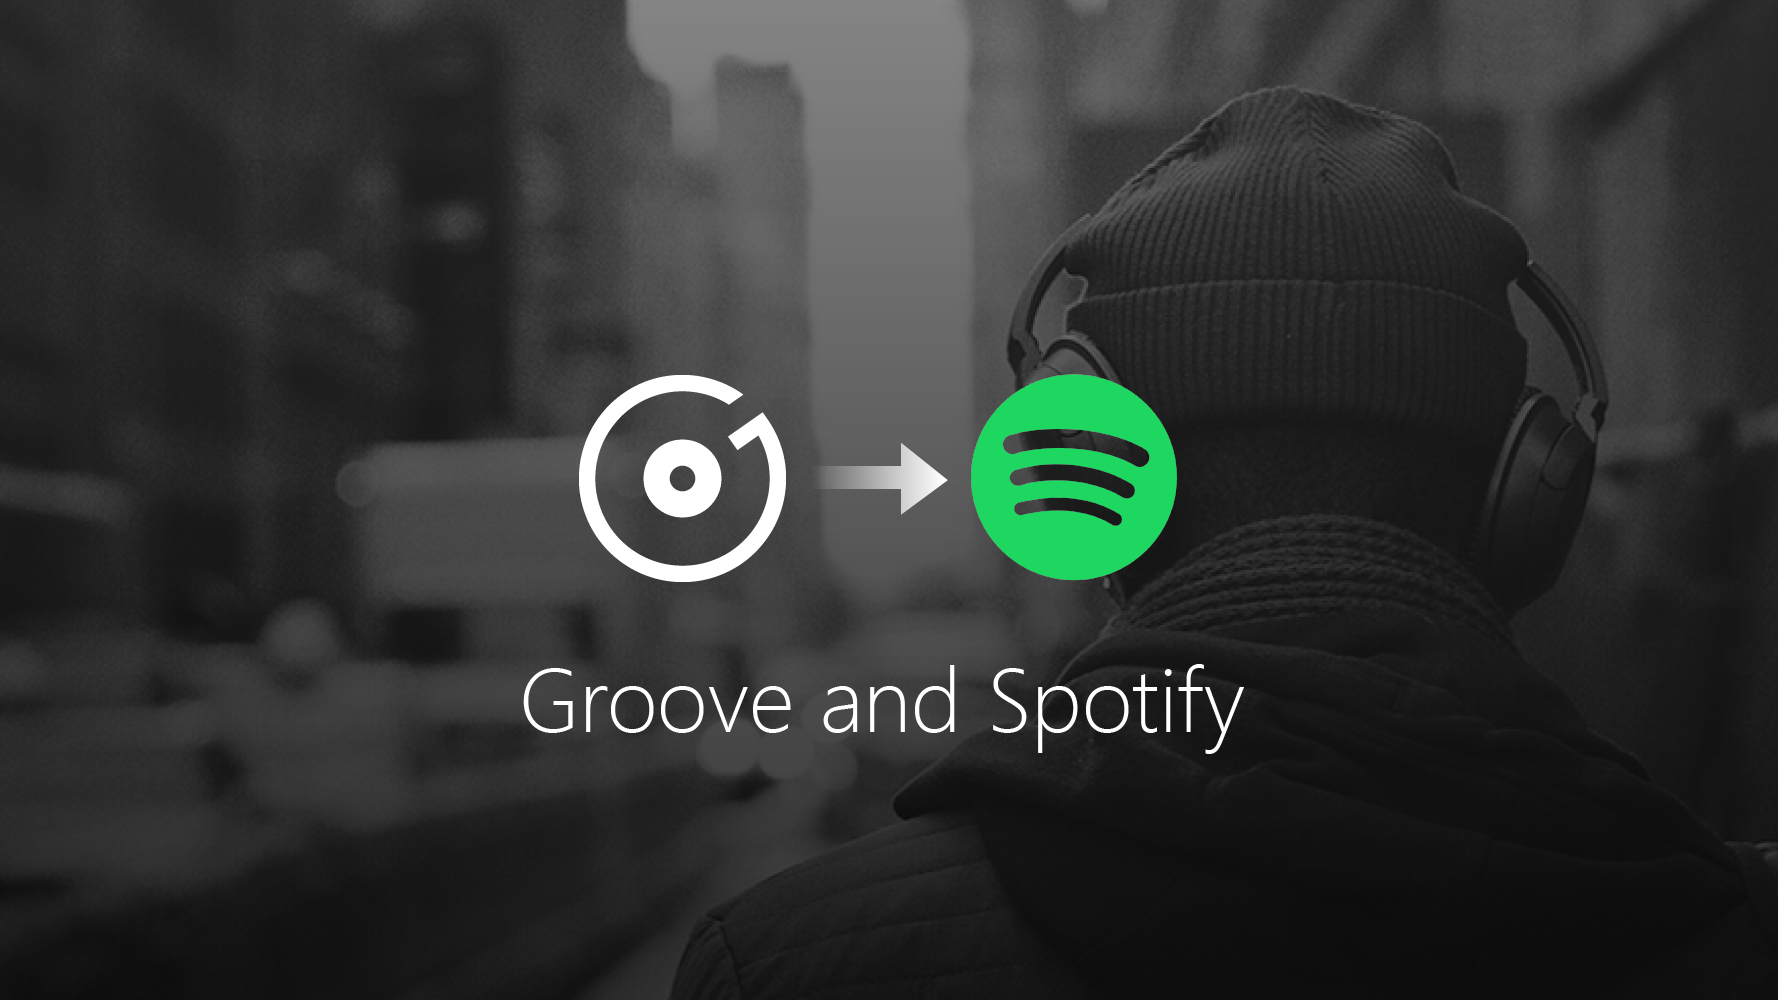 Microsoft to discontinue Groove Music app, transitions Music Pass customers to Spotify